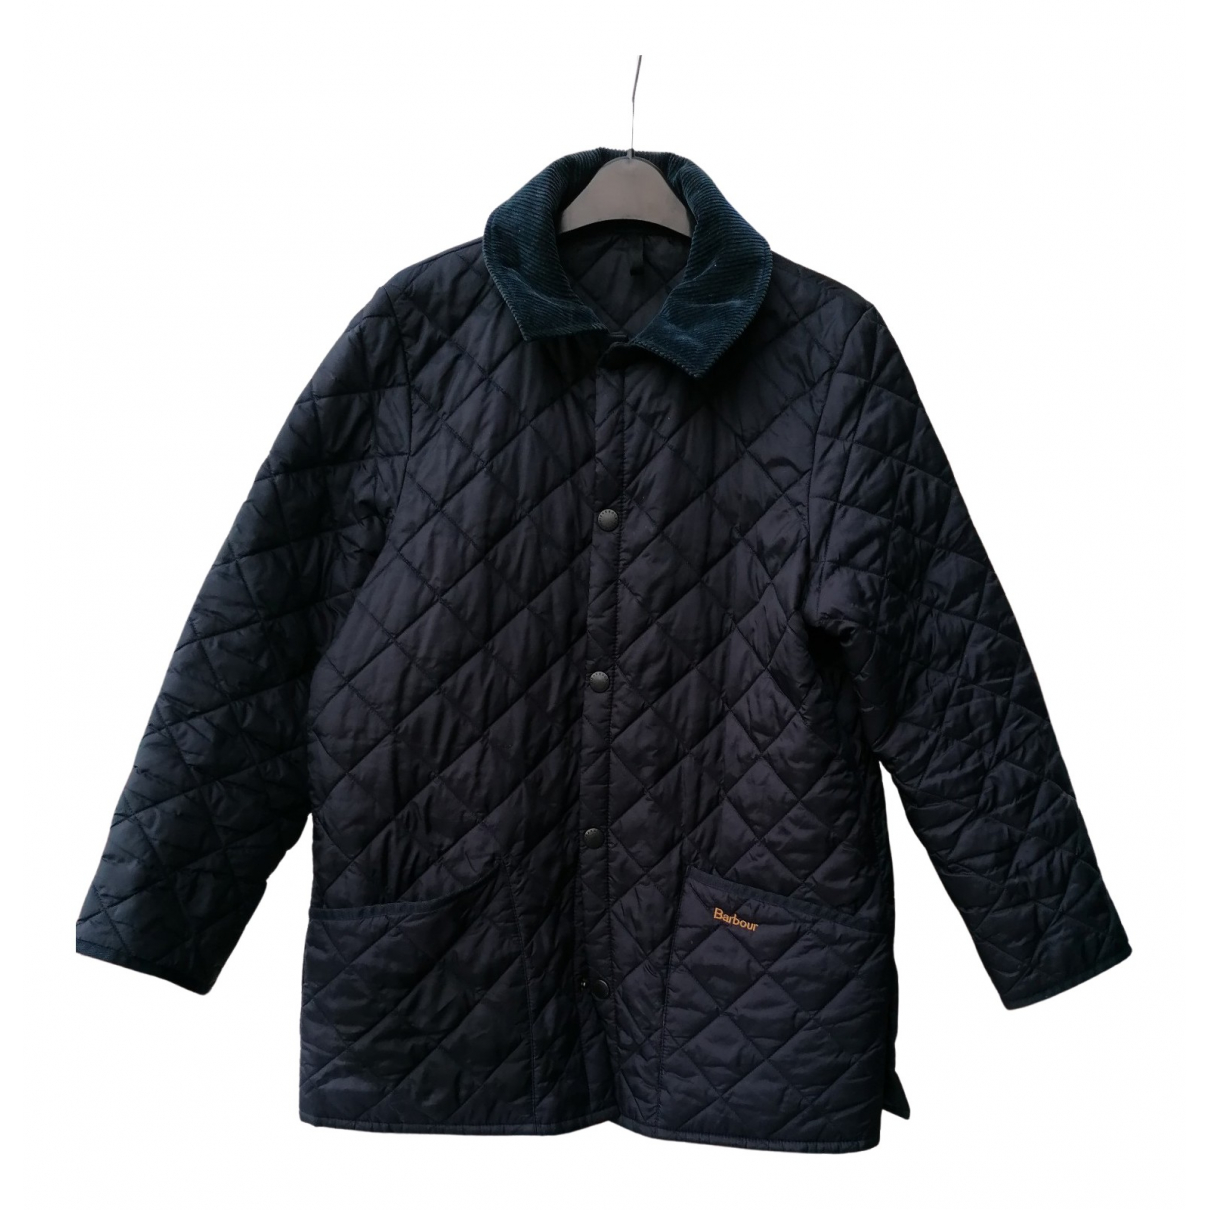 Barbour N Blue jacket & coat for Kids 20 years - XL UK